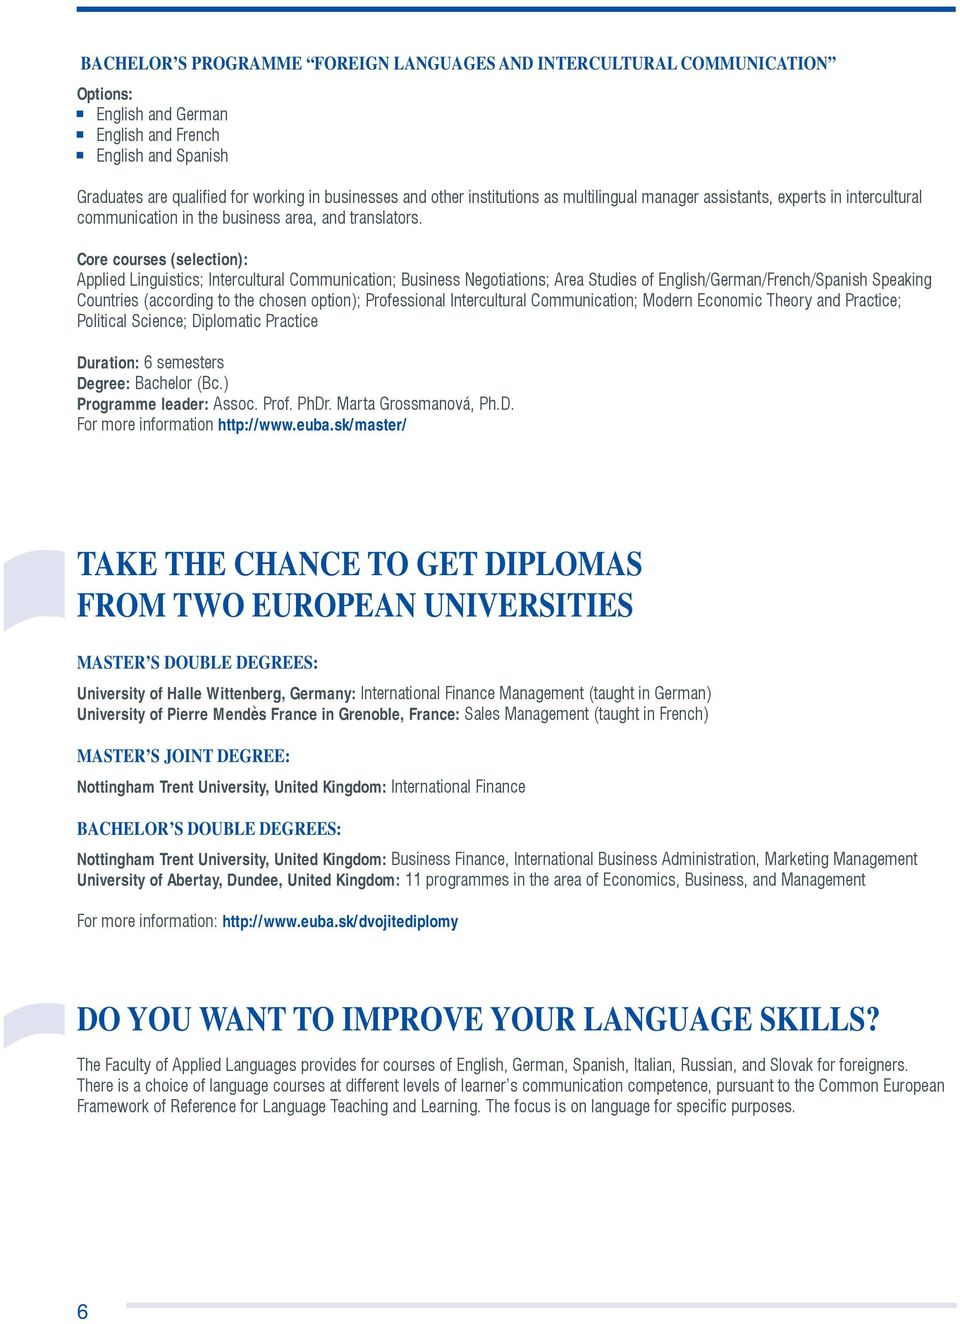 Core courses (selection): Applied Linguistics; Intercultural Communication; Business Negotiations; Area Studies of English/German/French/Spanish Speaking Countries (according to the chosen option);